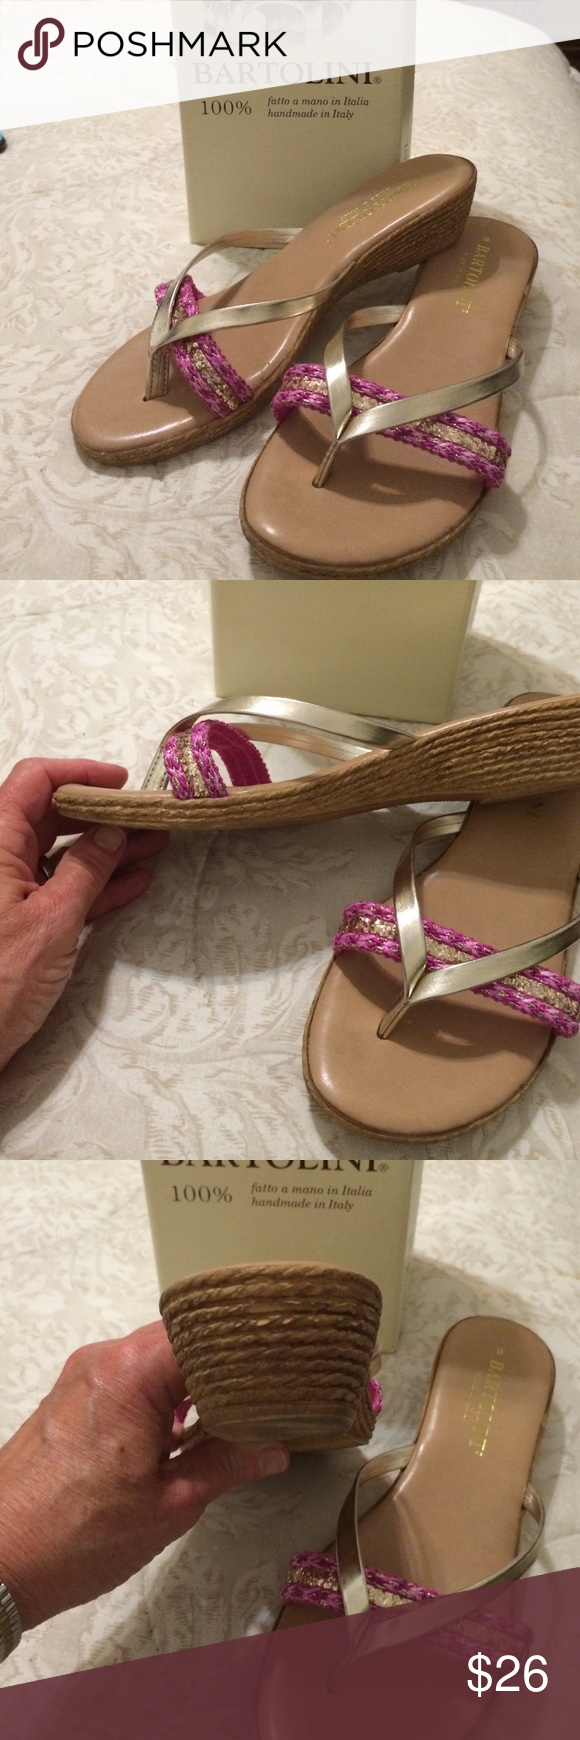 """Gold and pink wedge 1"""" heel Gold and pink wedge 1"""" heel Made in Italy Bertolini Shoes Wedges"""